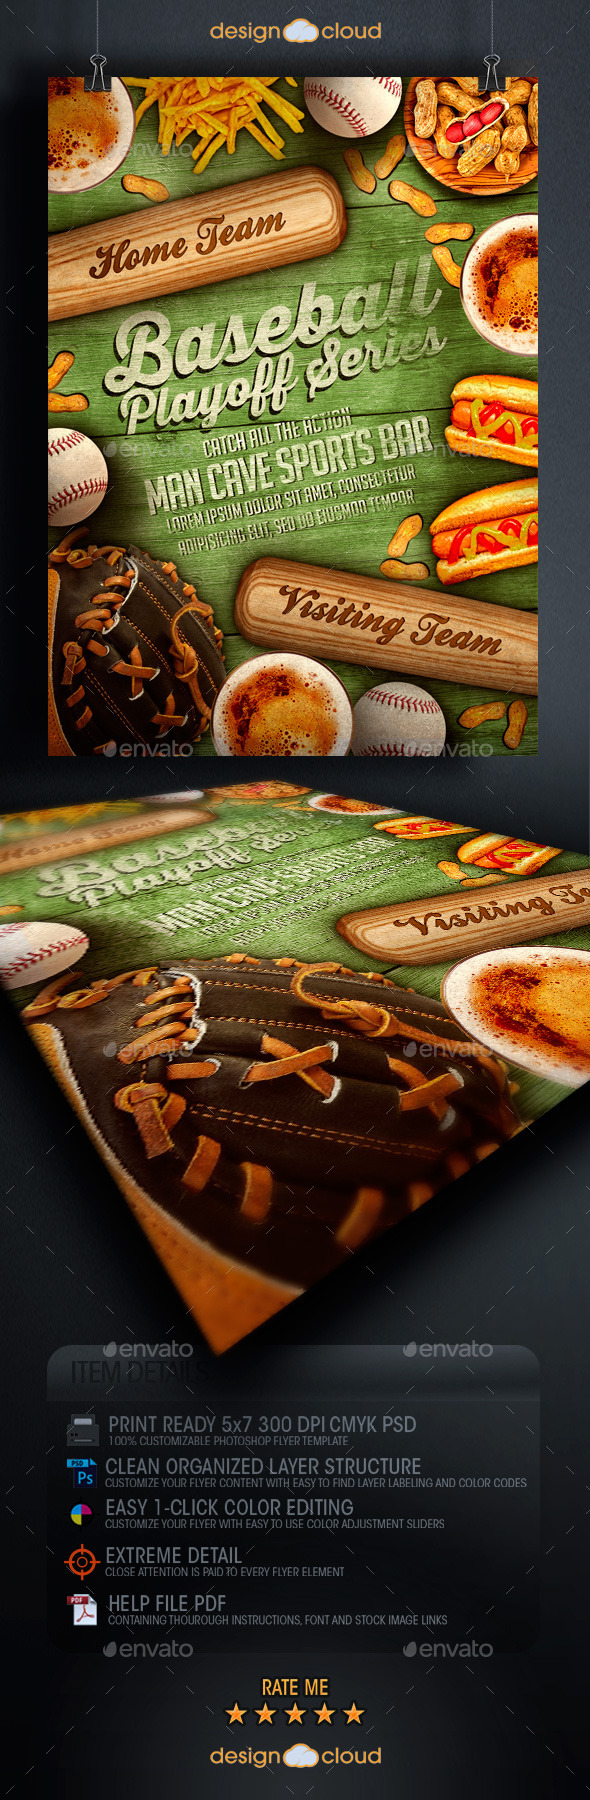 Baseball Playoff Series Flyer Template - Sports Events